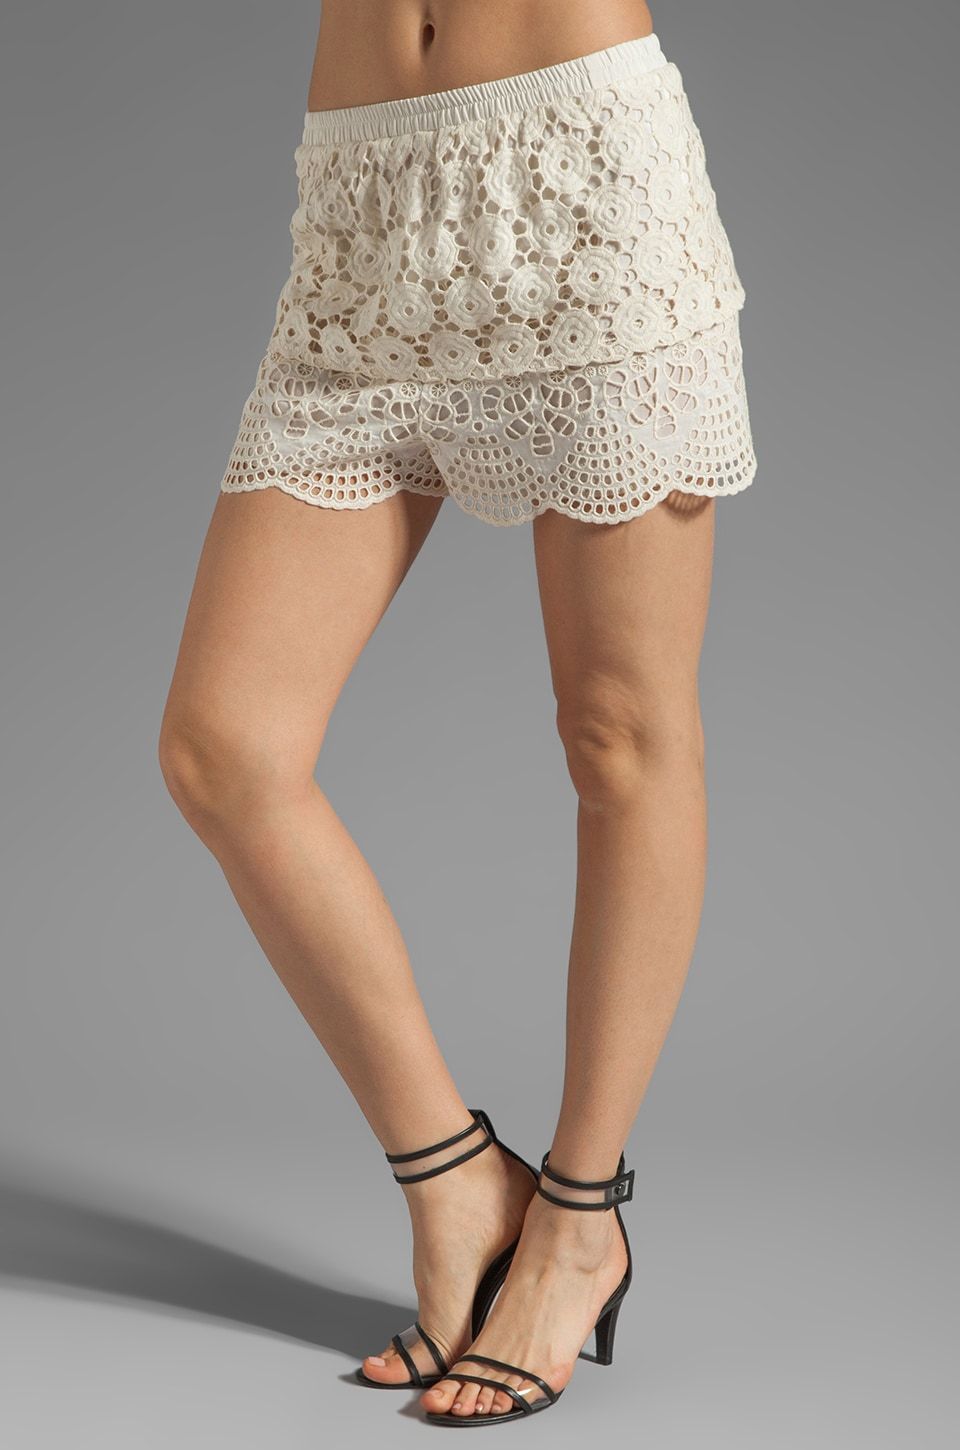 Anna Sui Bohemian Eyelet Embroidered Short in Cream